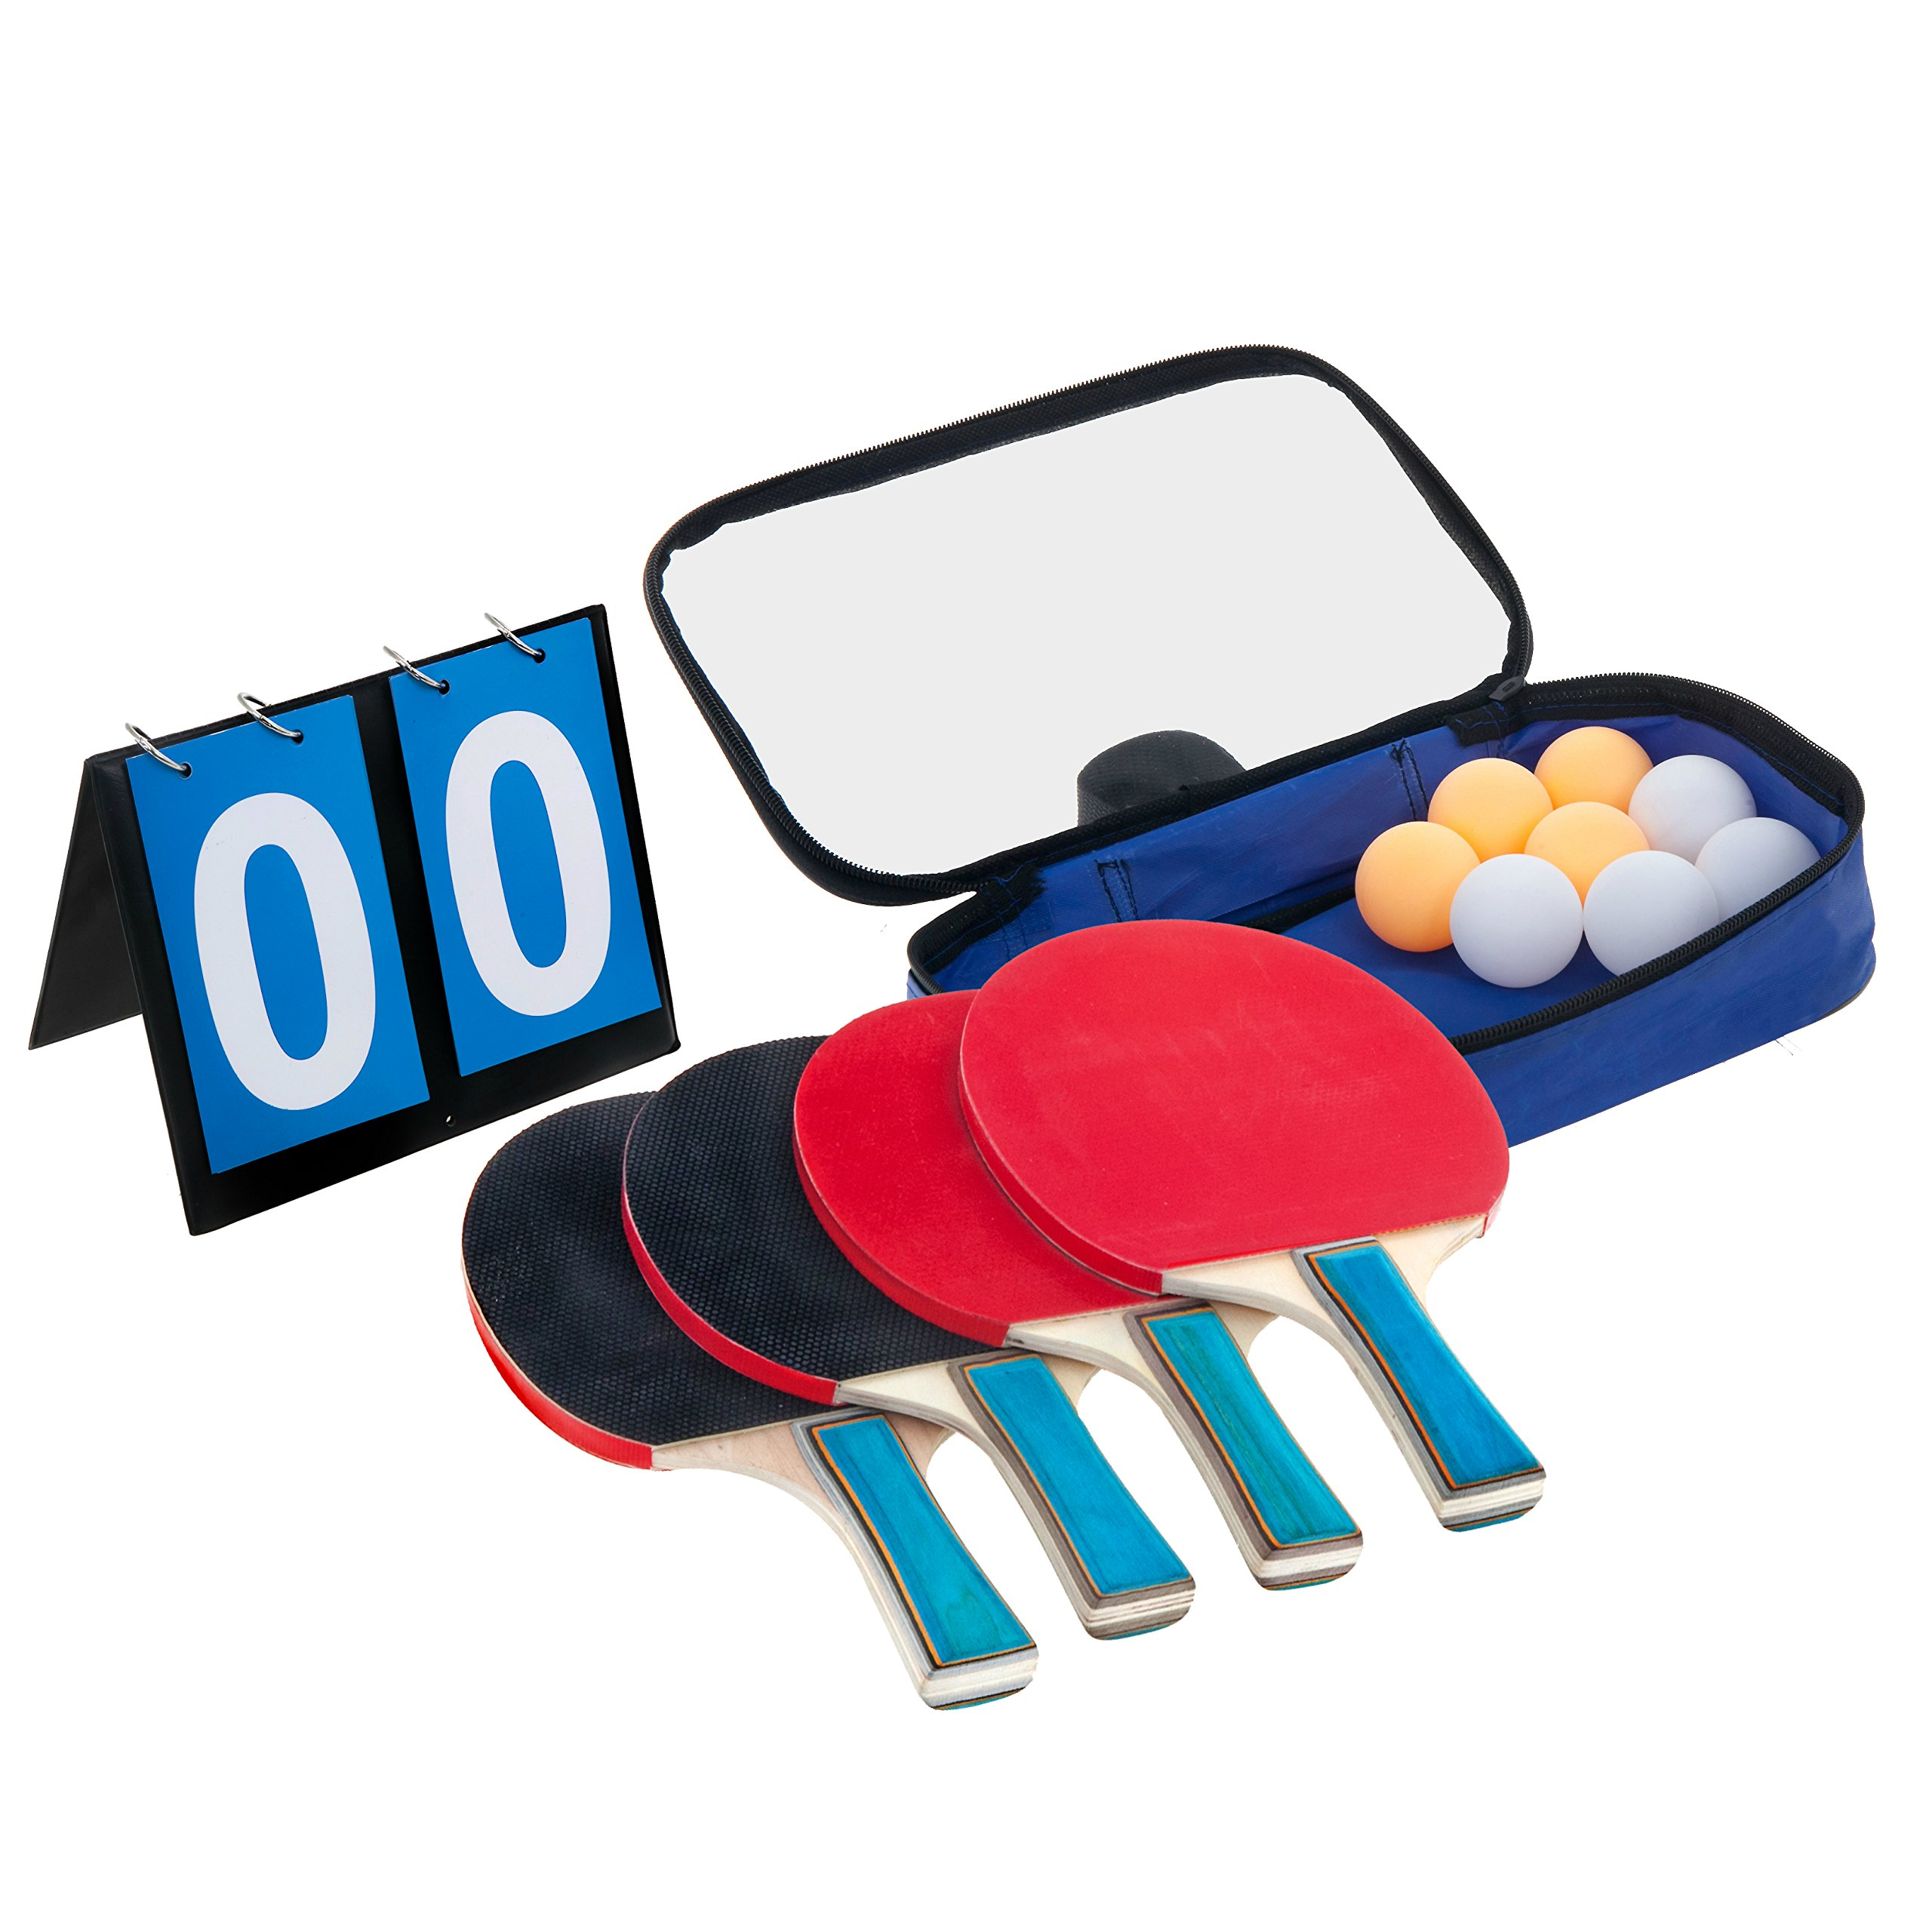 Laicol Ping Pong Paddle Set of 4 Paddles, 8 Balls and Carrying Bag Complete with Scoreboard Sets You up for a 4 Player Table Tennis Game